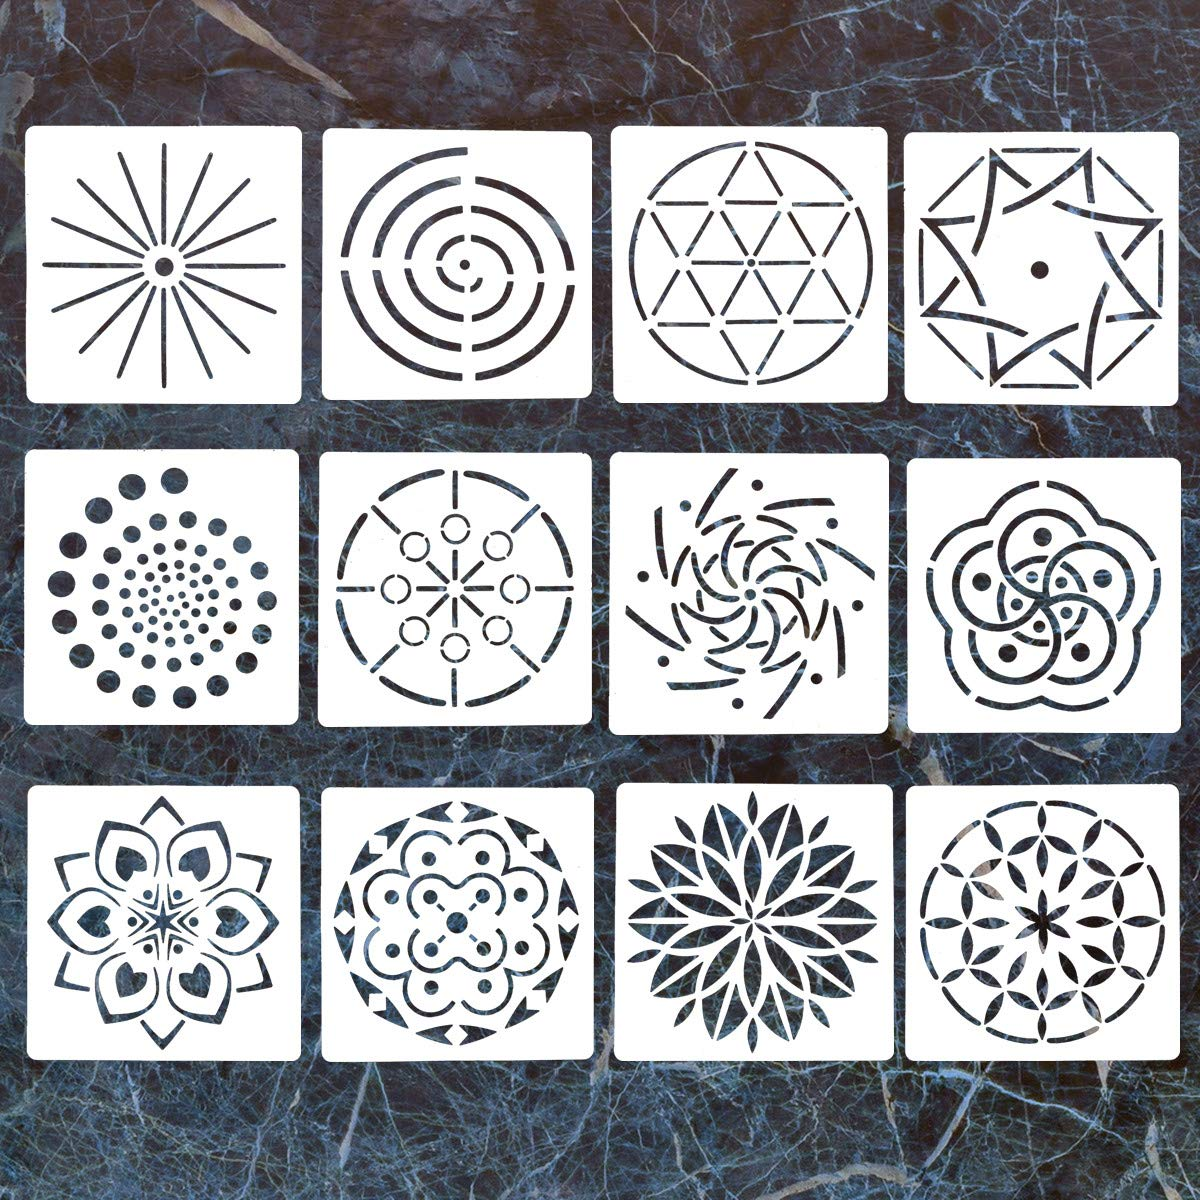 12 Pack Mandala Dotting Stencils Template,Mandala Dotting Stencils Mandala Dot Painting Stencils Painting Stencils for Painting on Wood,Airbrush and Walls Art DaBuLiu